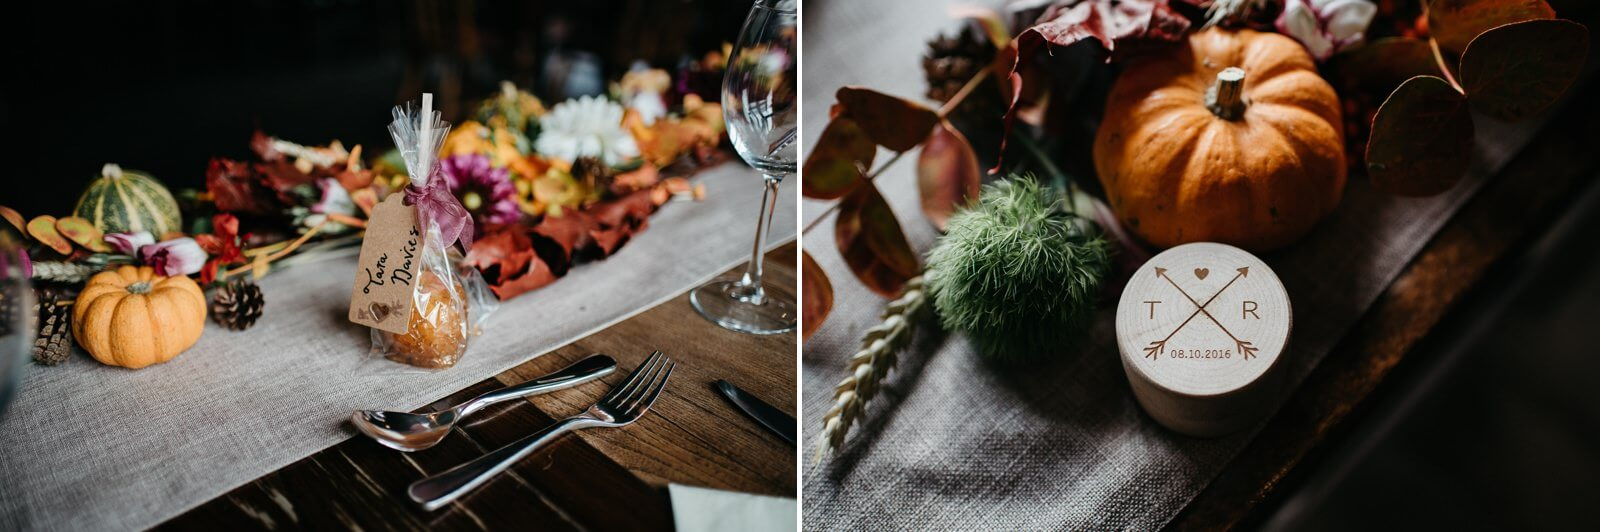 Autumn wedding decor details featuring mini pumpkins or munchkins, conkers, leaves, and pinecones on top of a hessian table runner